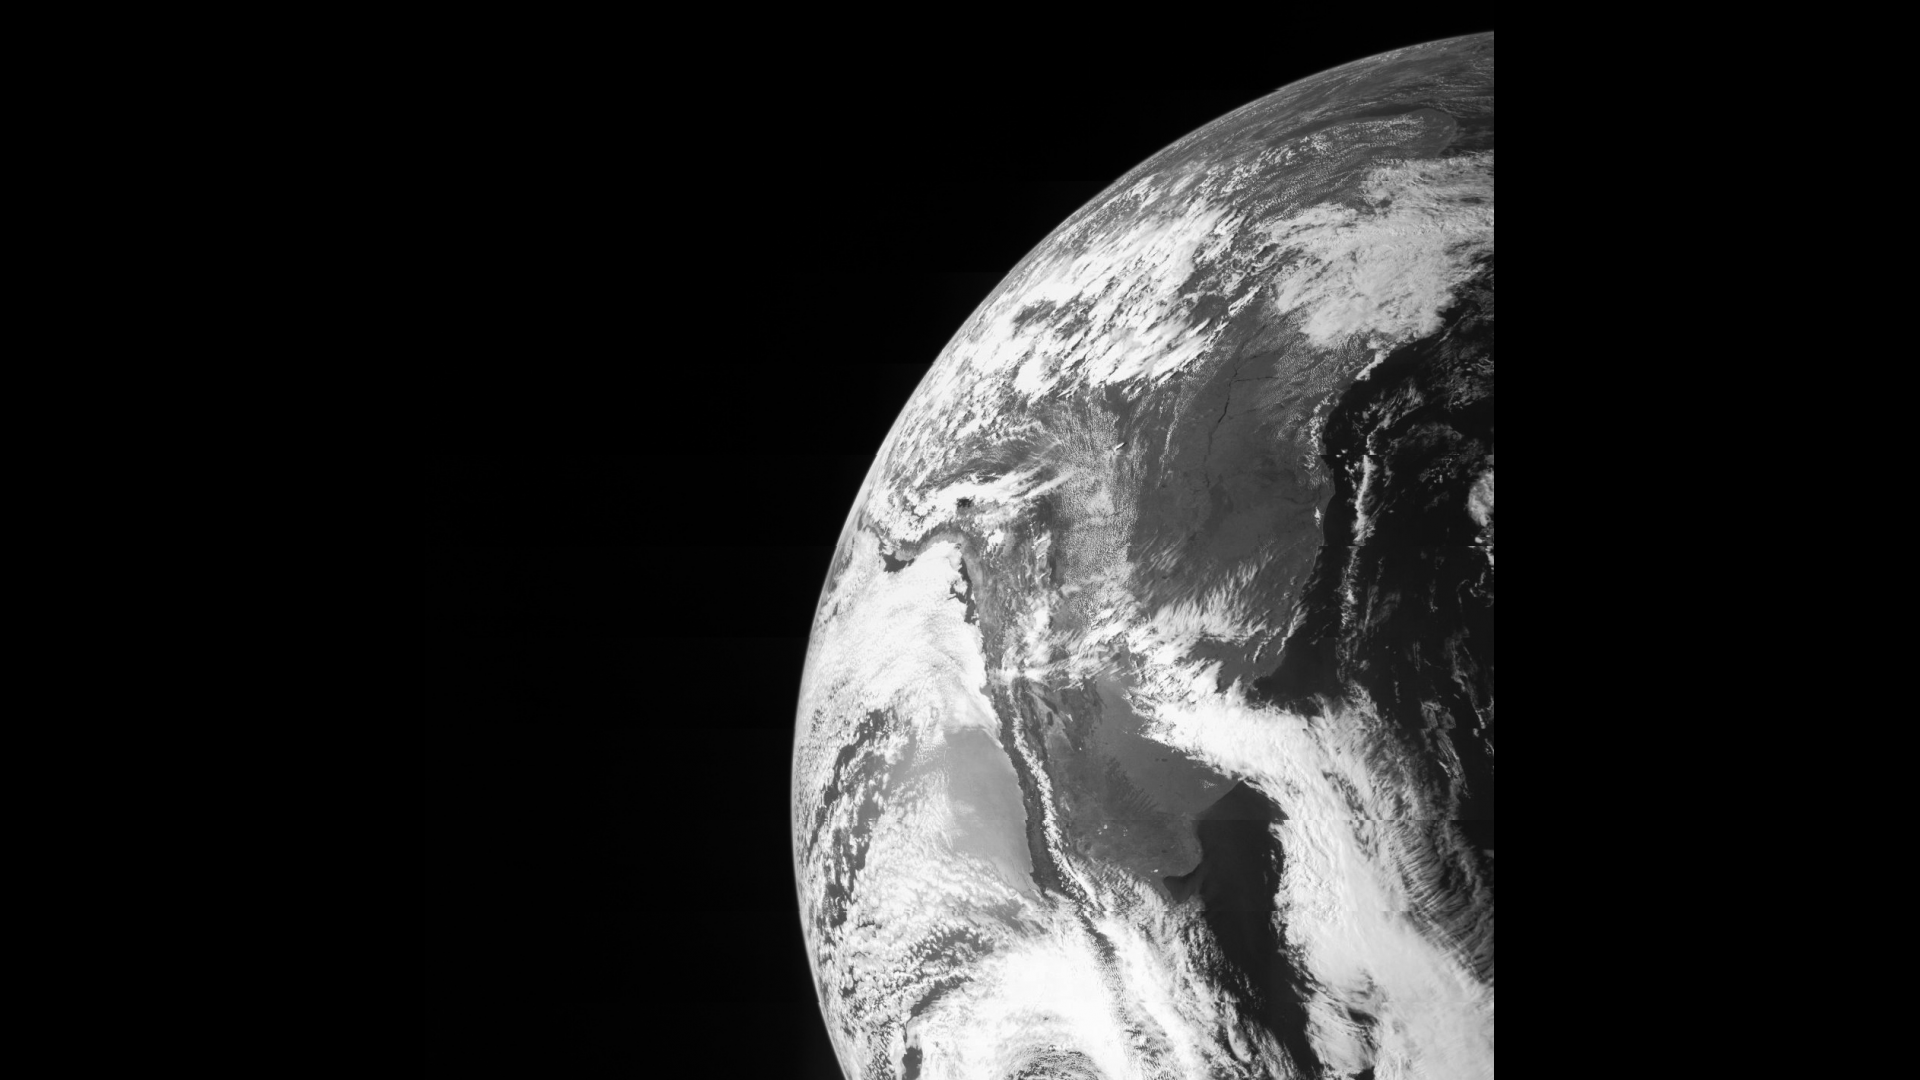 On Oct. 9, Juno flew by Earth using the home planet's gravity to get a boost needed to reach Jupiter. The JunoCam caught this image of Earth, and other instruments were tested to ensure they work as designed during a close planetary encounter. Credit: NASA/JPL-Caltech/Malin Space Science Systems